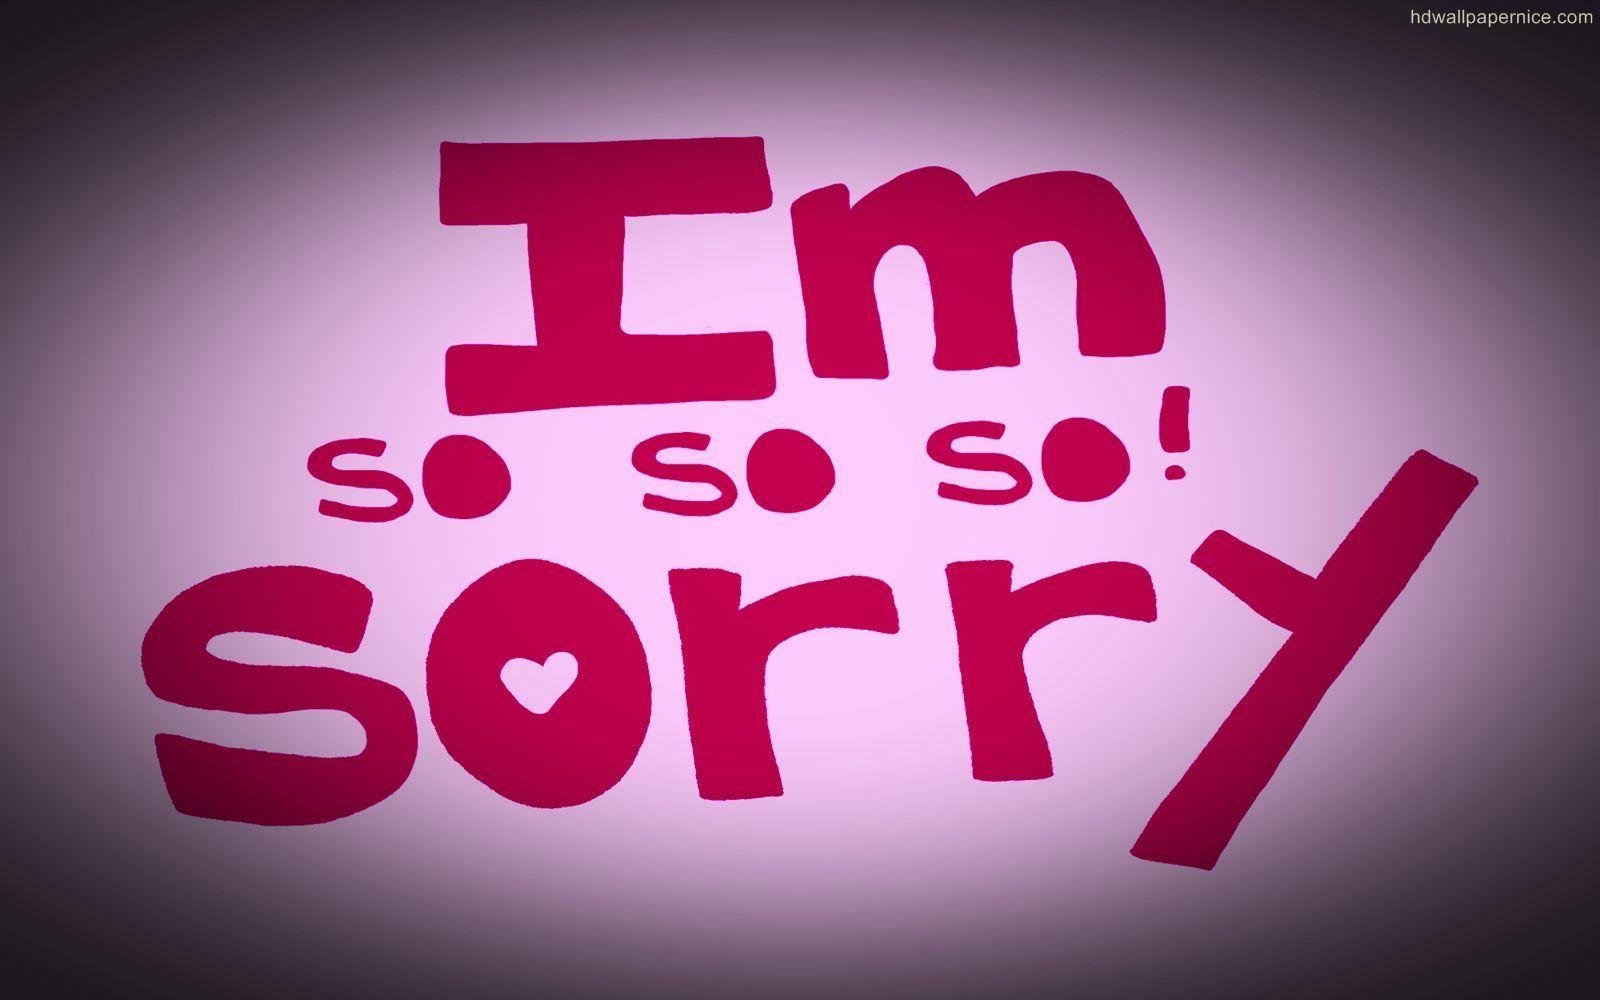 Sorry images hd wallpapers wallpaper sportstle sorry wallpapers wallpaper cave thecheapjerseys Image collections